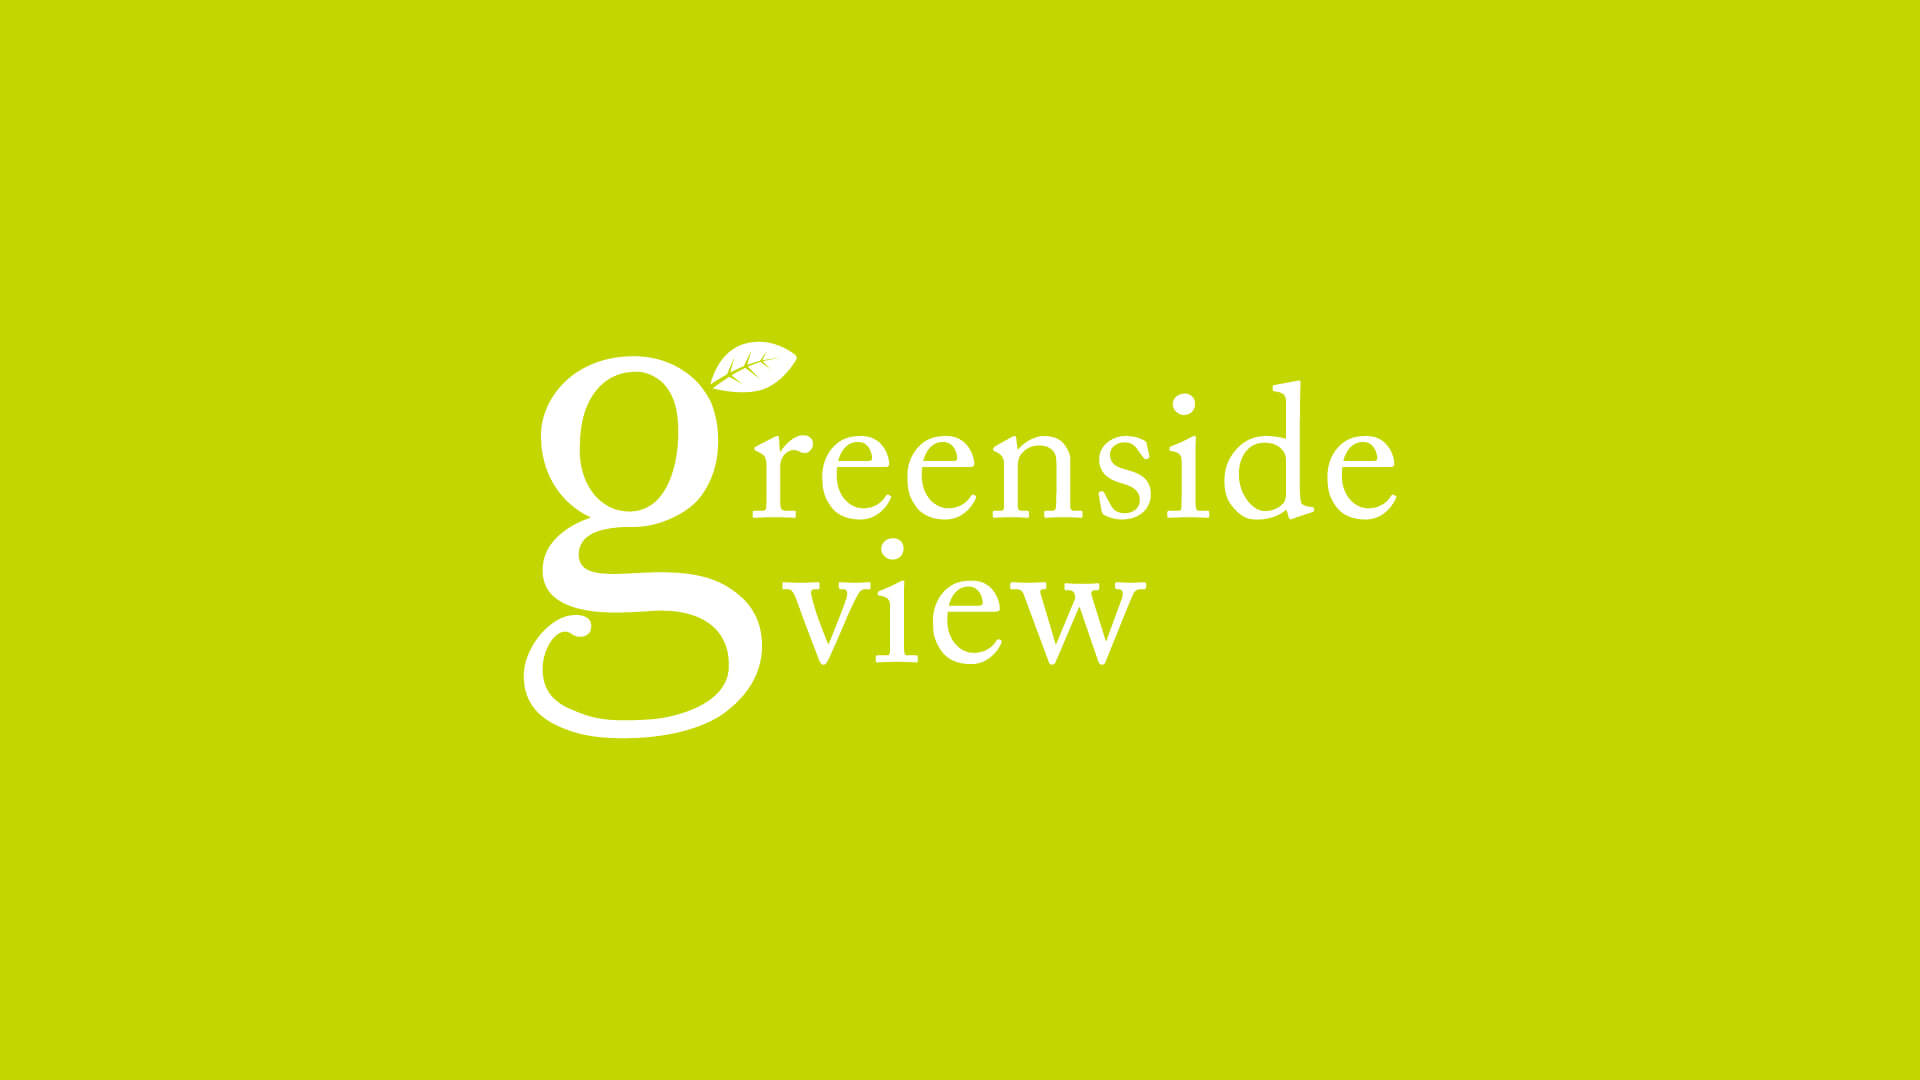 Greenside View Brand